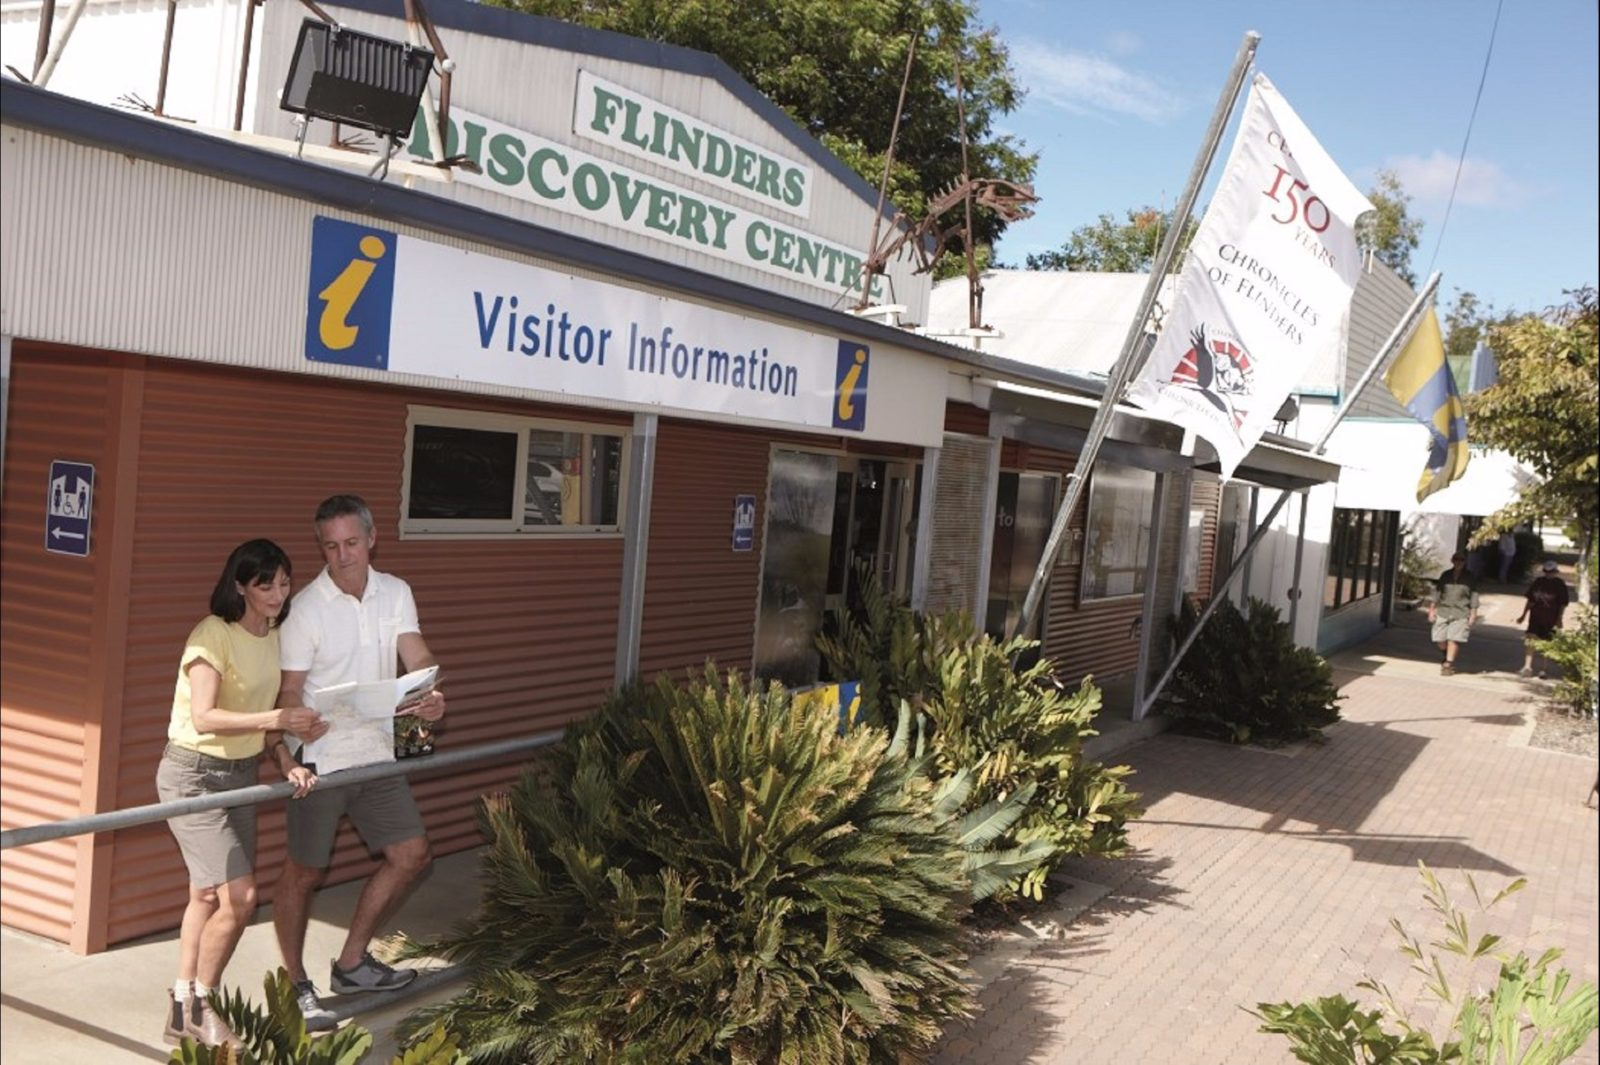 Flinders Discovery Centre